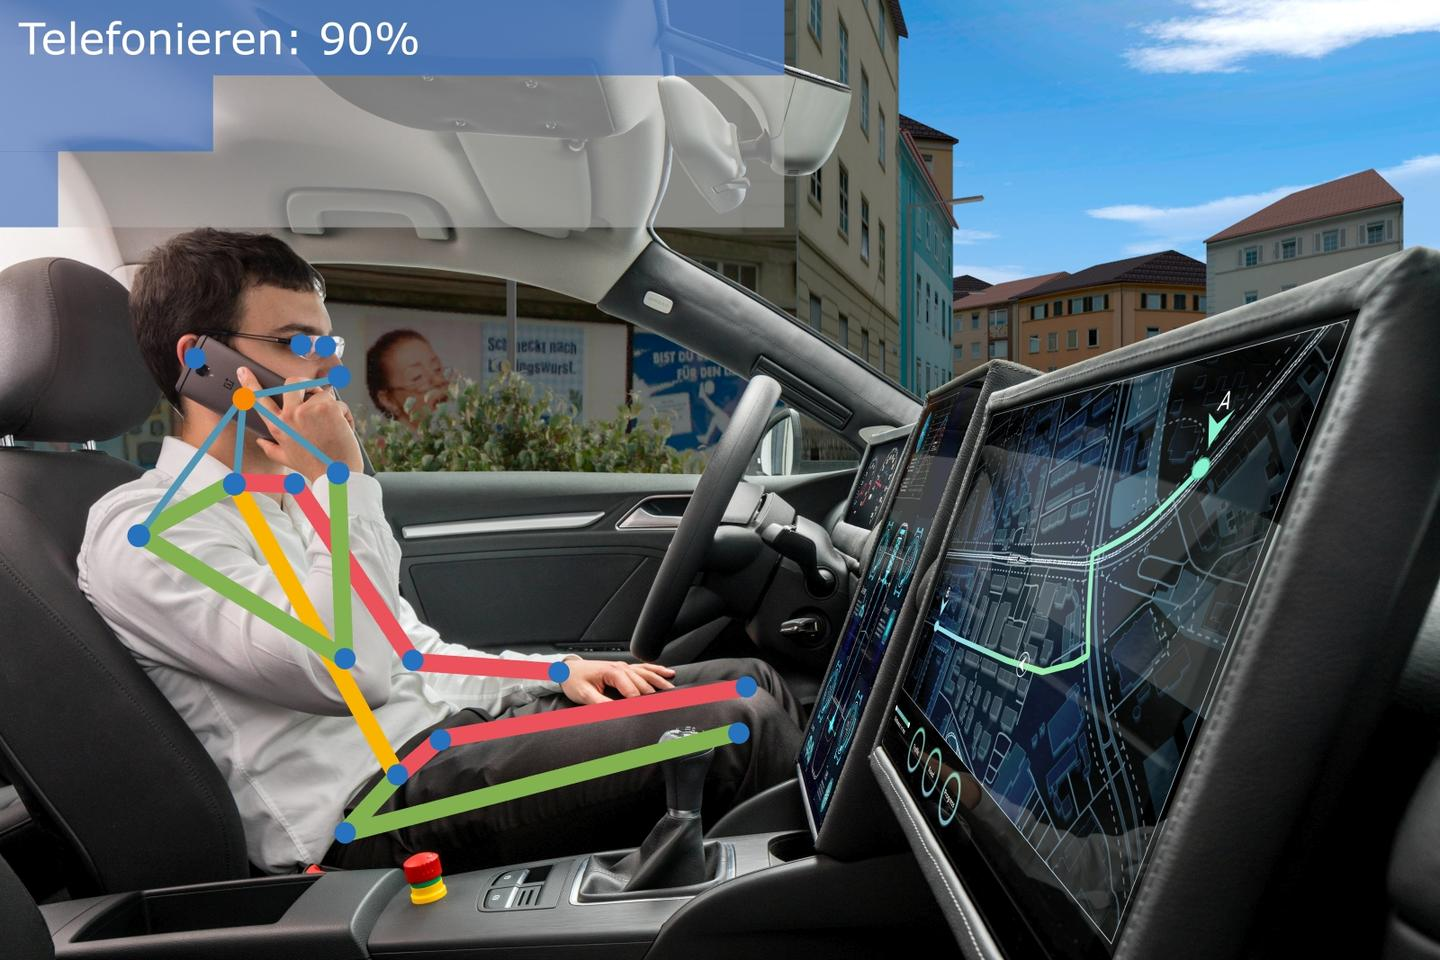 Existing systems are already able to determine if the driver is getting tired, but the Fraunhofer system can actually tell what they're up to – such as if they're talking on their smartphone